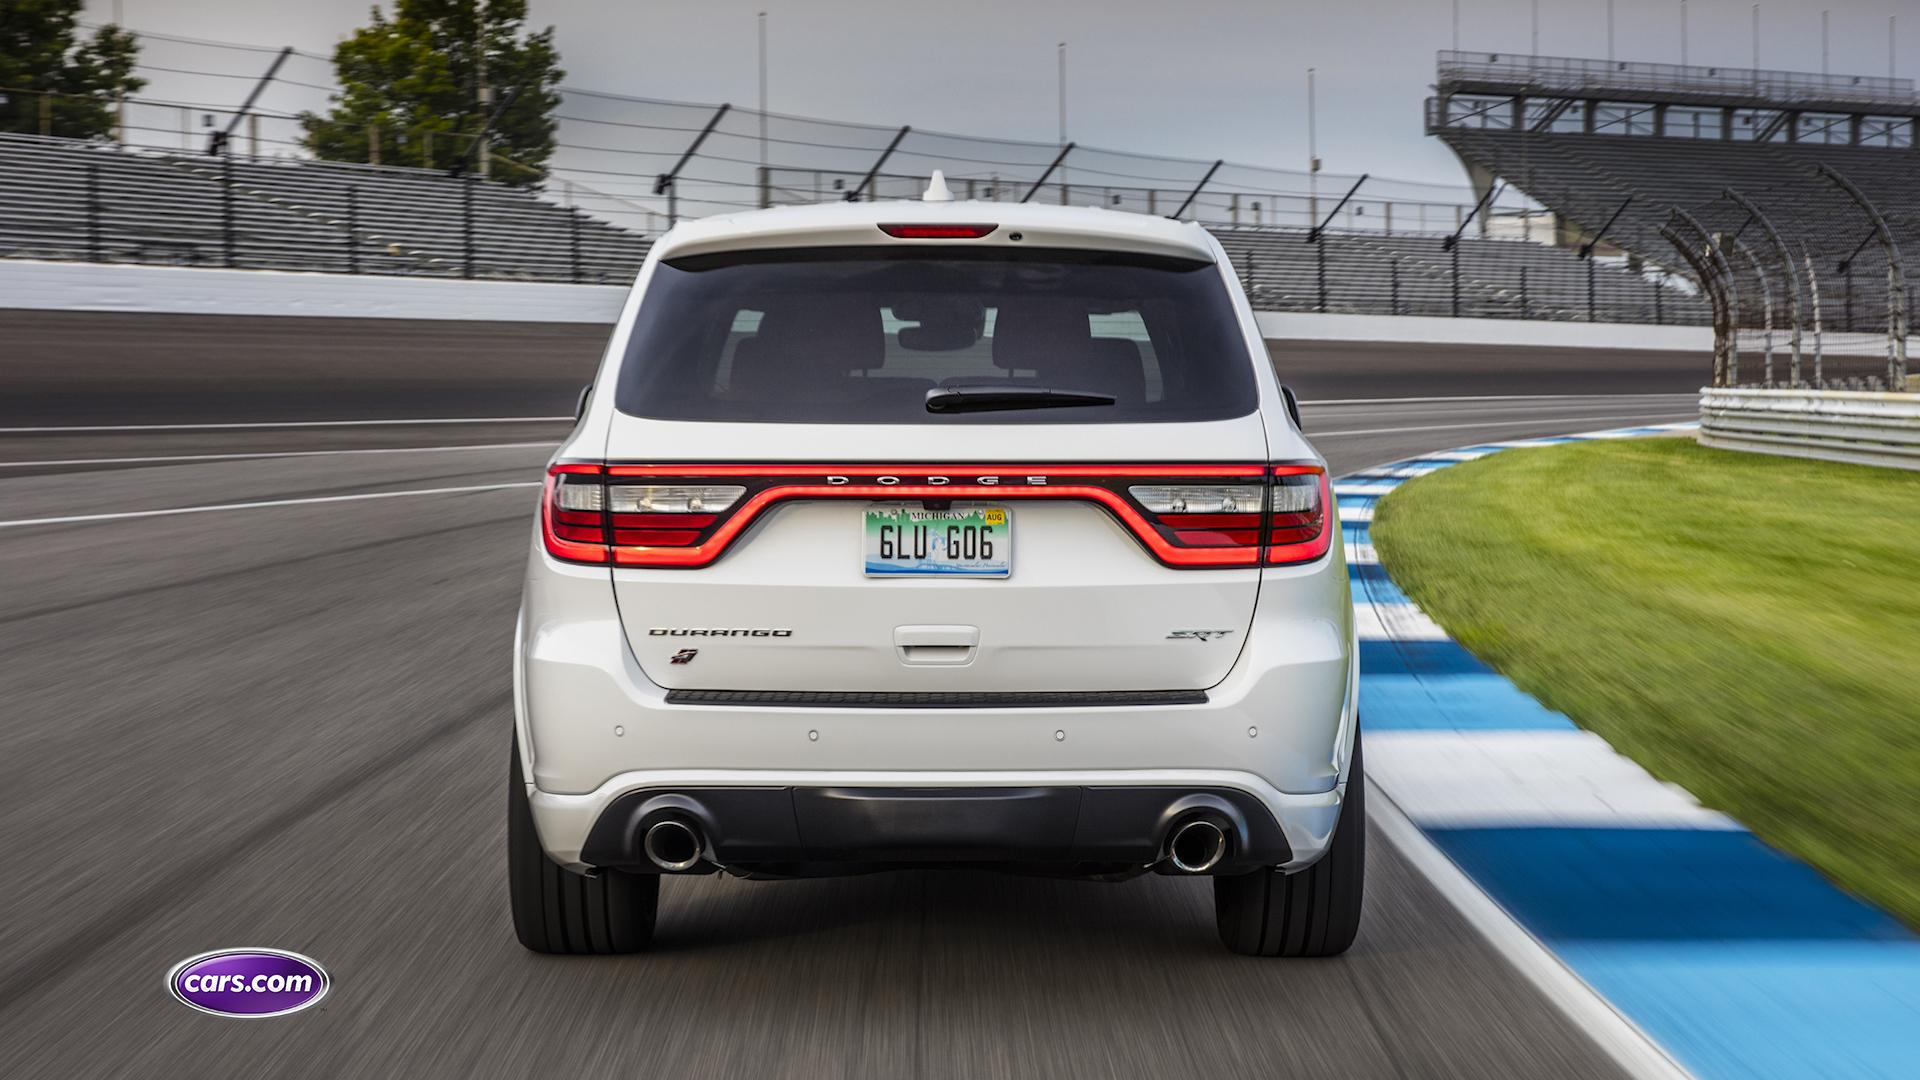 Video: 2018 Dodge Durango SRT: Exhaust